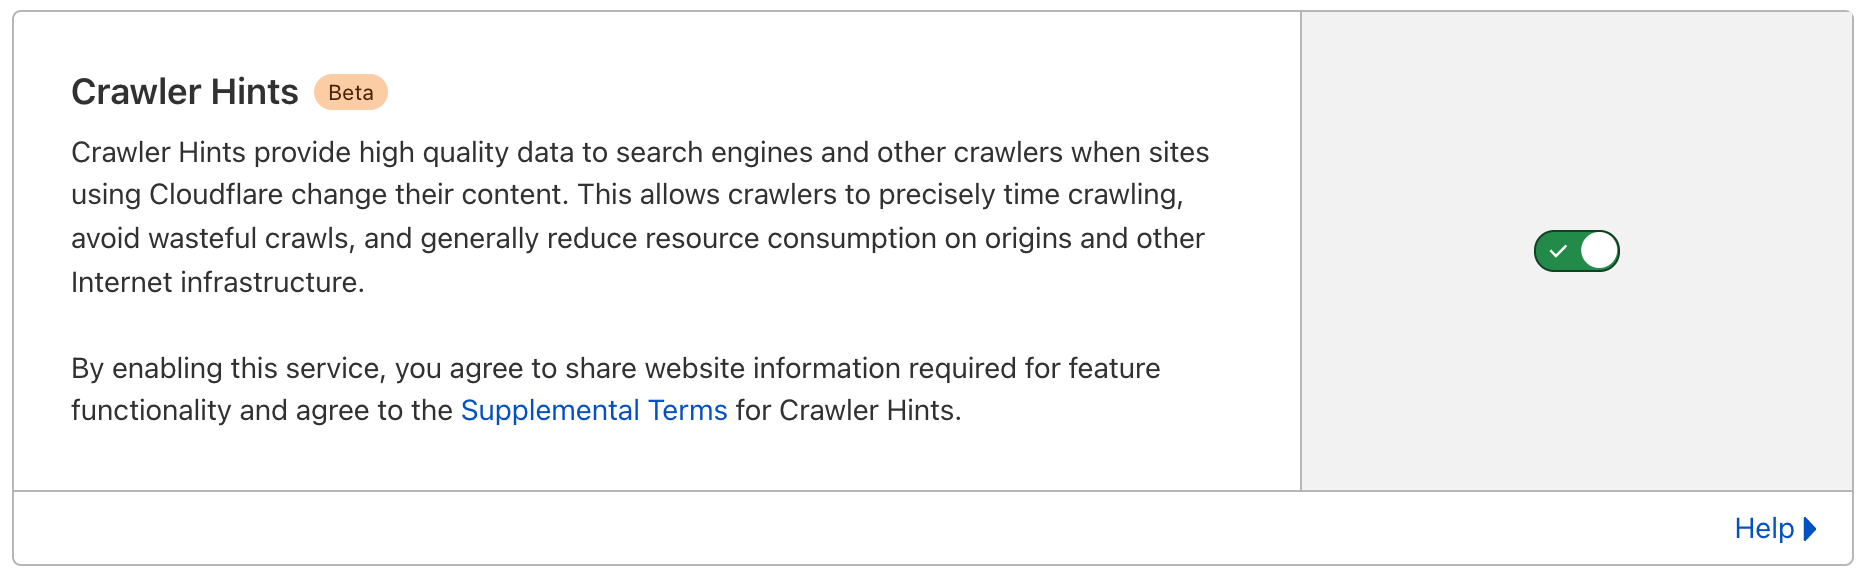 Crawler Hints Update: Cloudflare Supports IndexNow and Announces General Availability